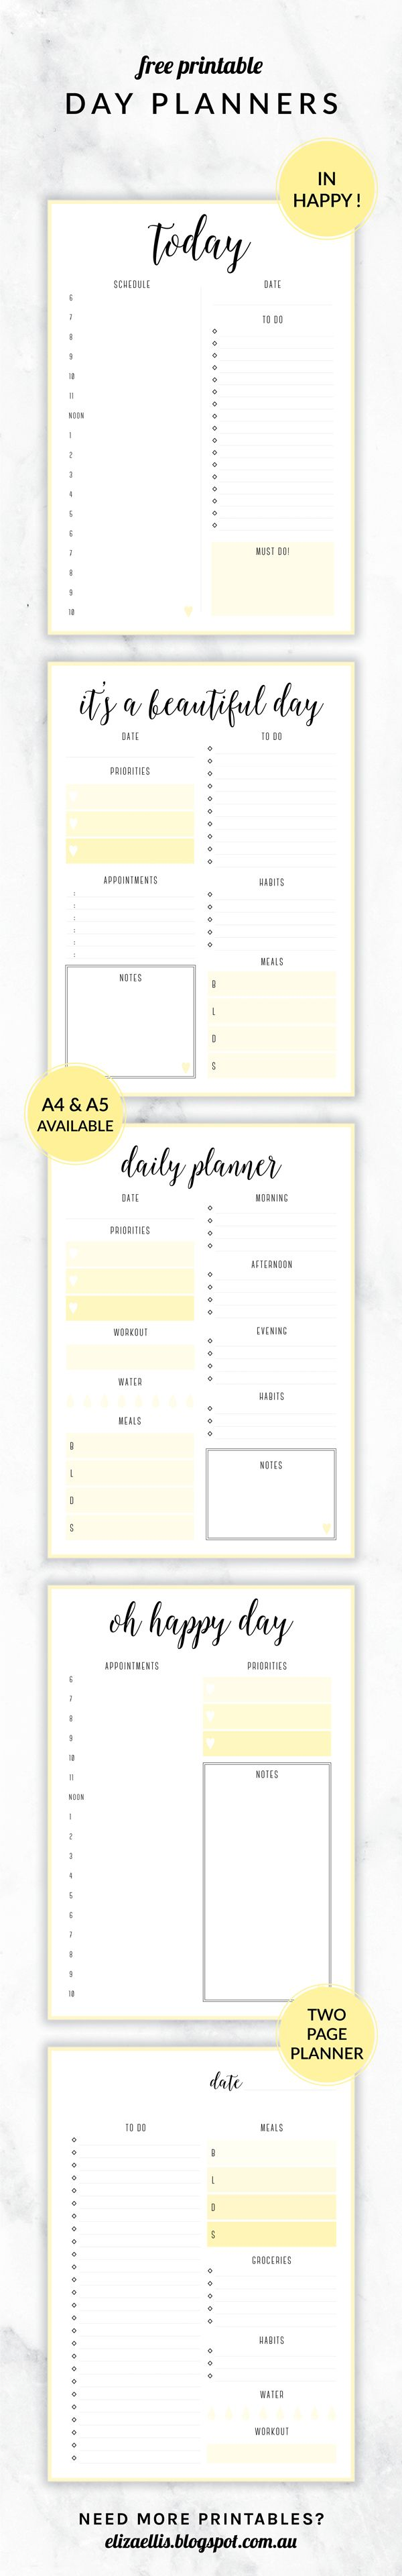 Free Printable Irma Day Planners   Different Designs Available